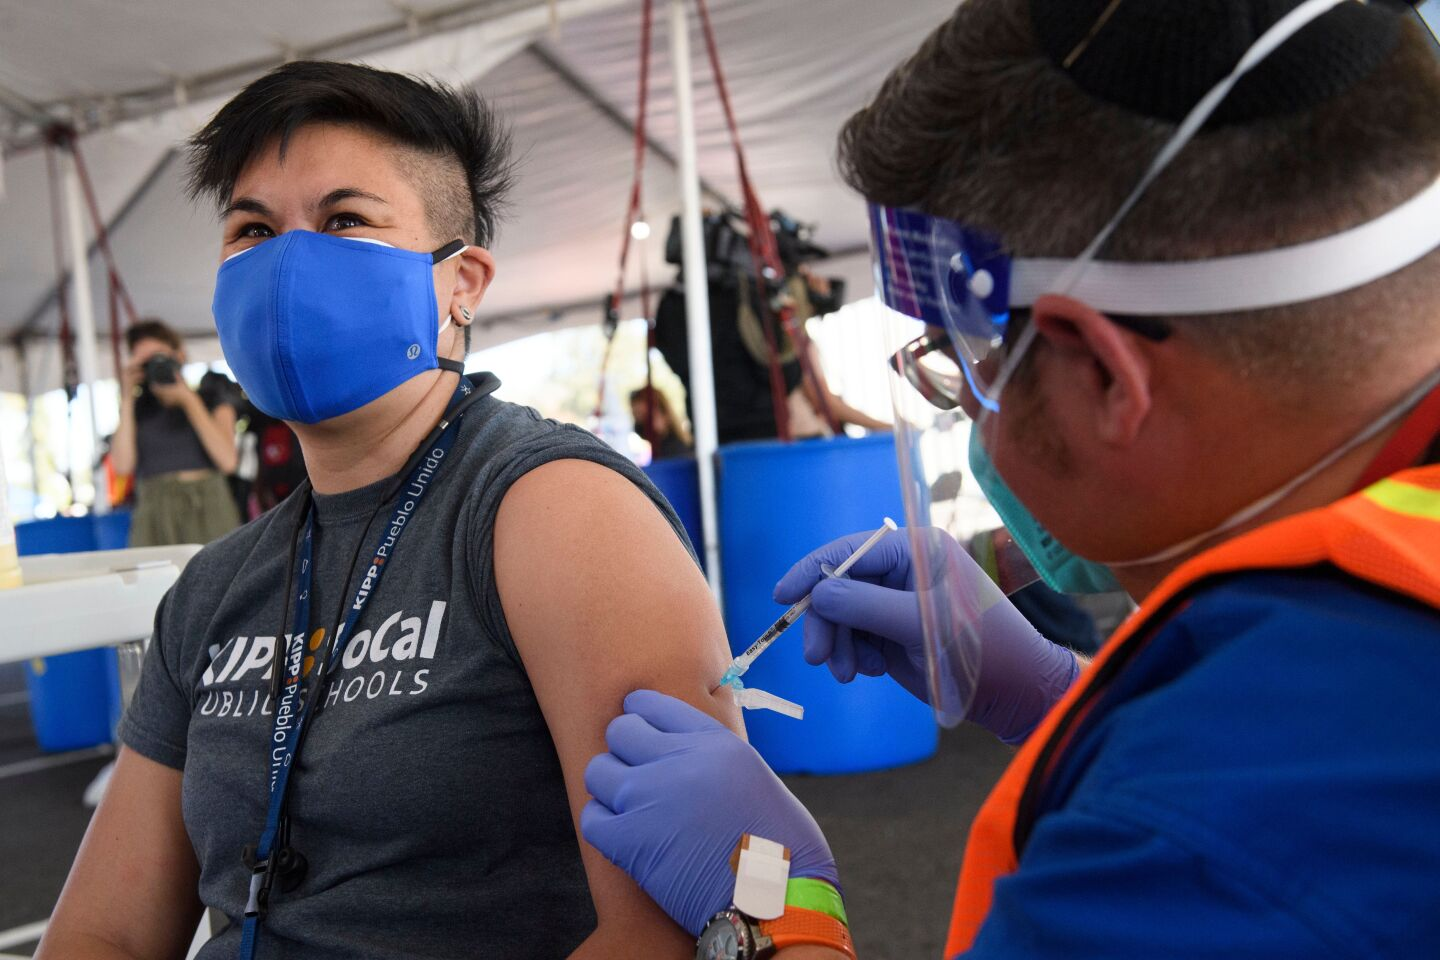 An education worker receives a vaccination at a mass vaccination site in a parking lot at Hollywood Park adjacent to SoFi stadium during the Covid-19 pandemic on March 1, 2021 in Inglewood, California.